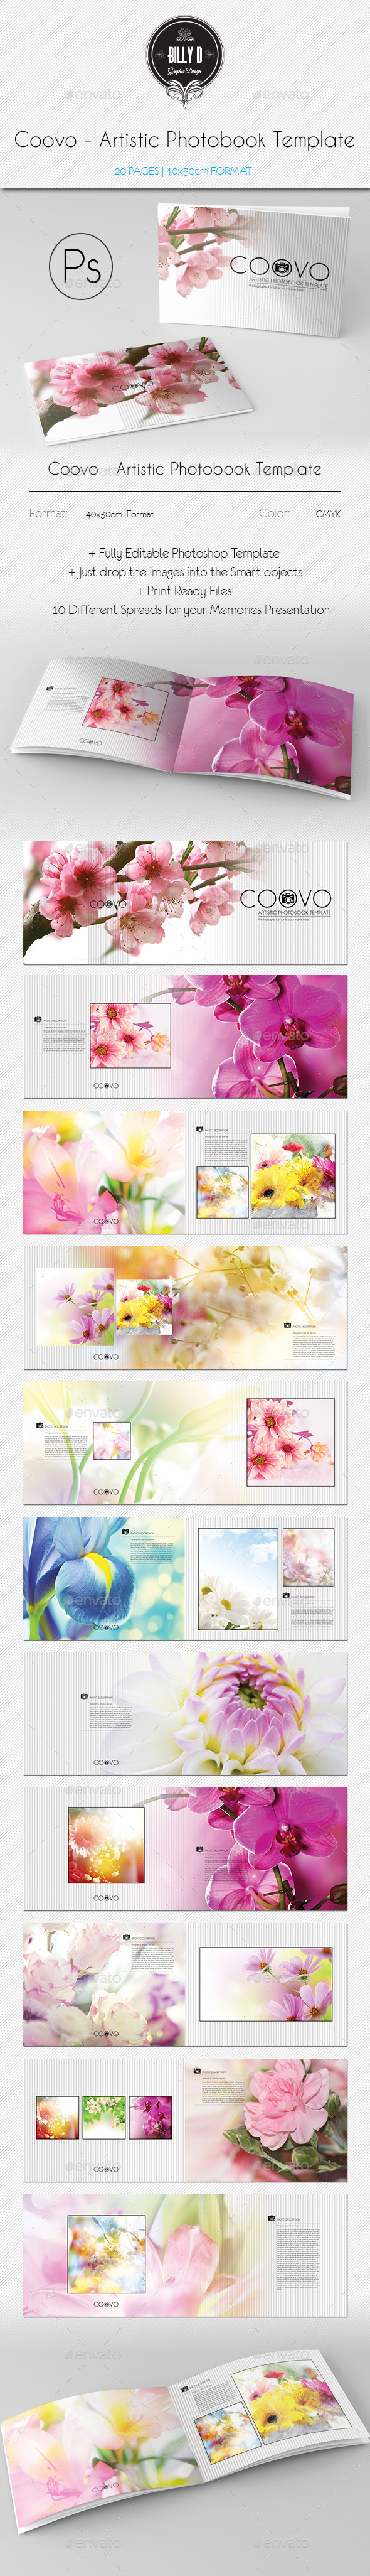 GraphicRiver Coovo Artistic Photobook Template 9960106